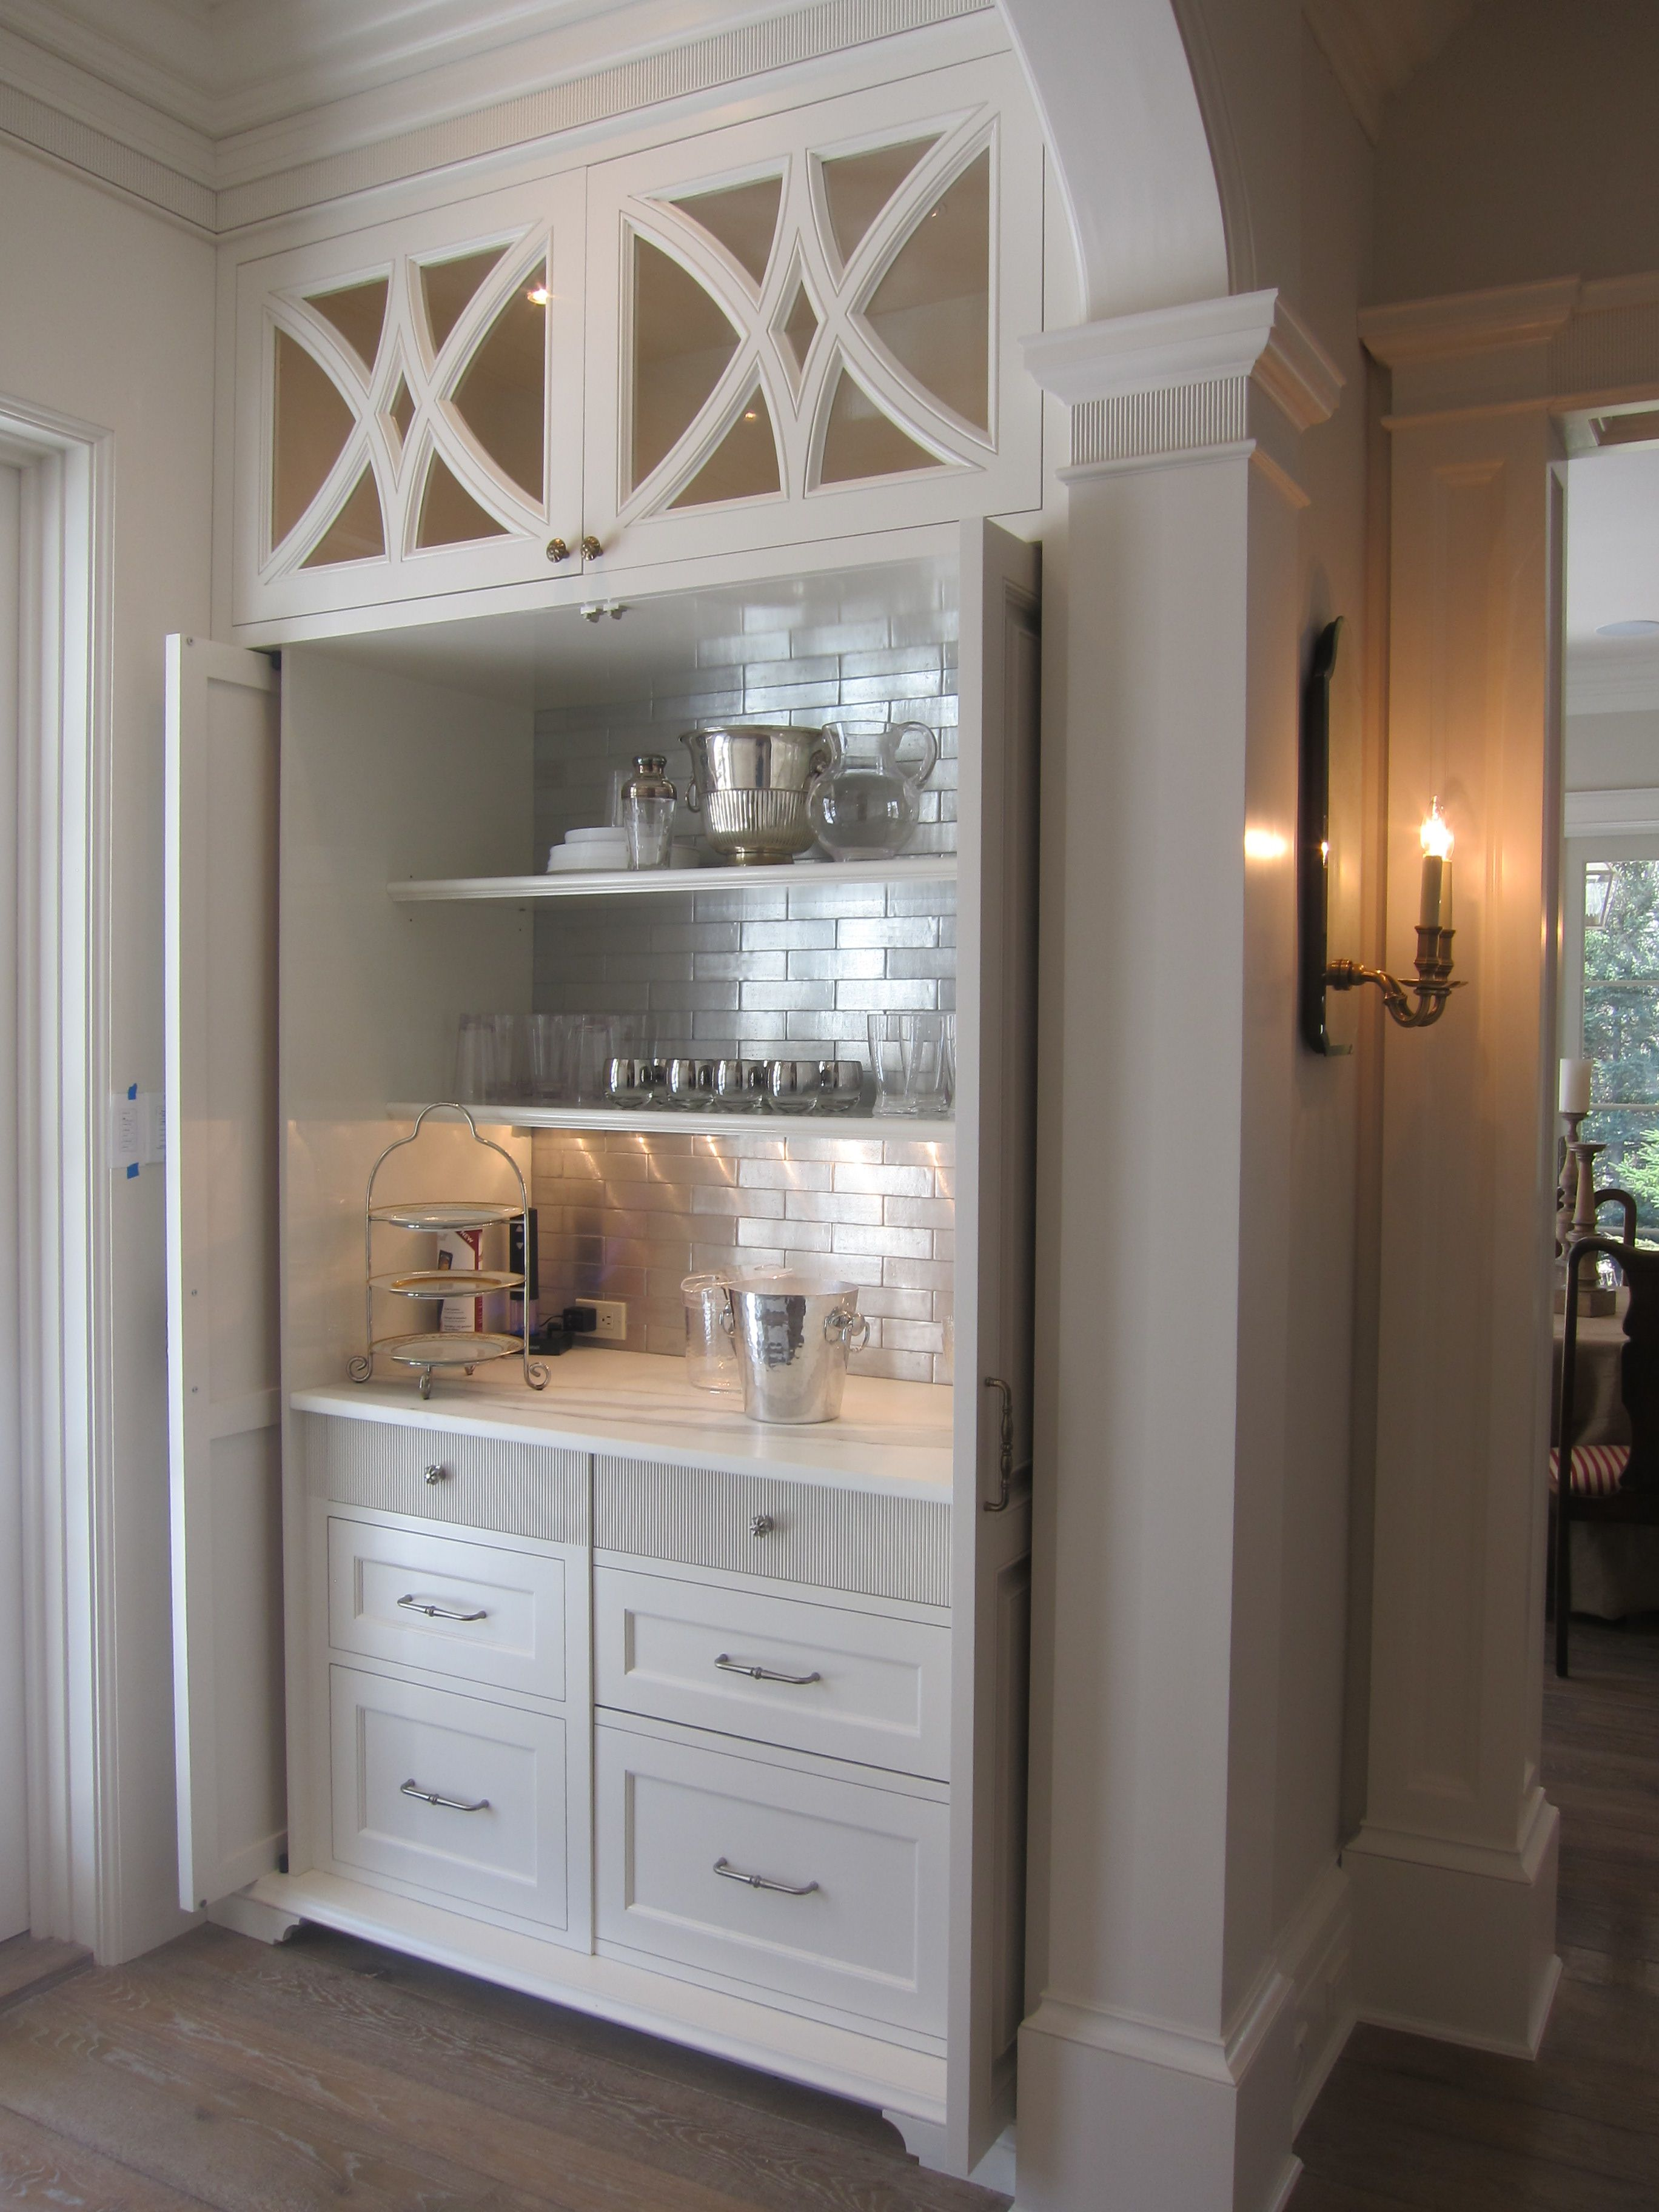 Beautiful Custom Dry Bar Area With Recessed Pocket Doors Inset Shaker Style Drawers And